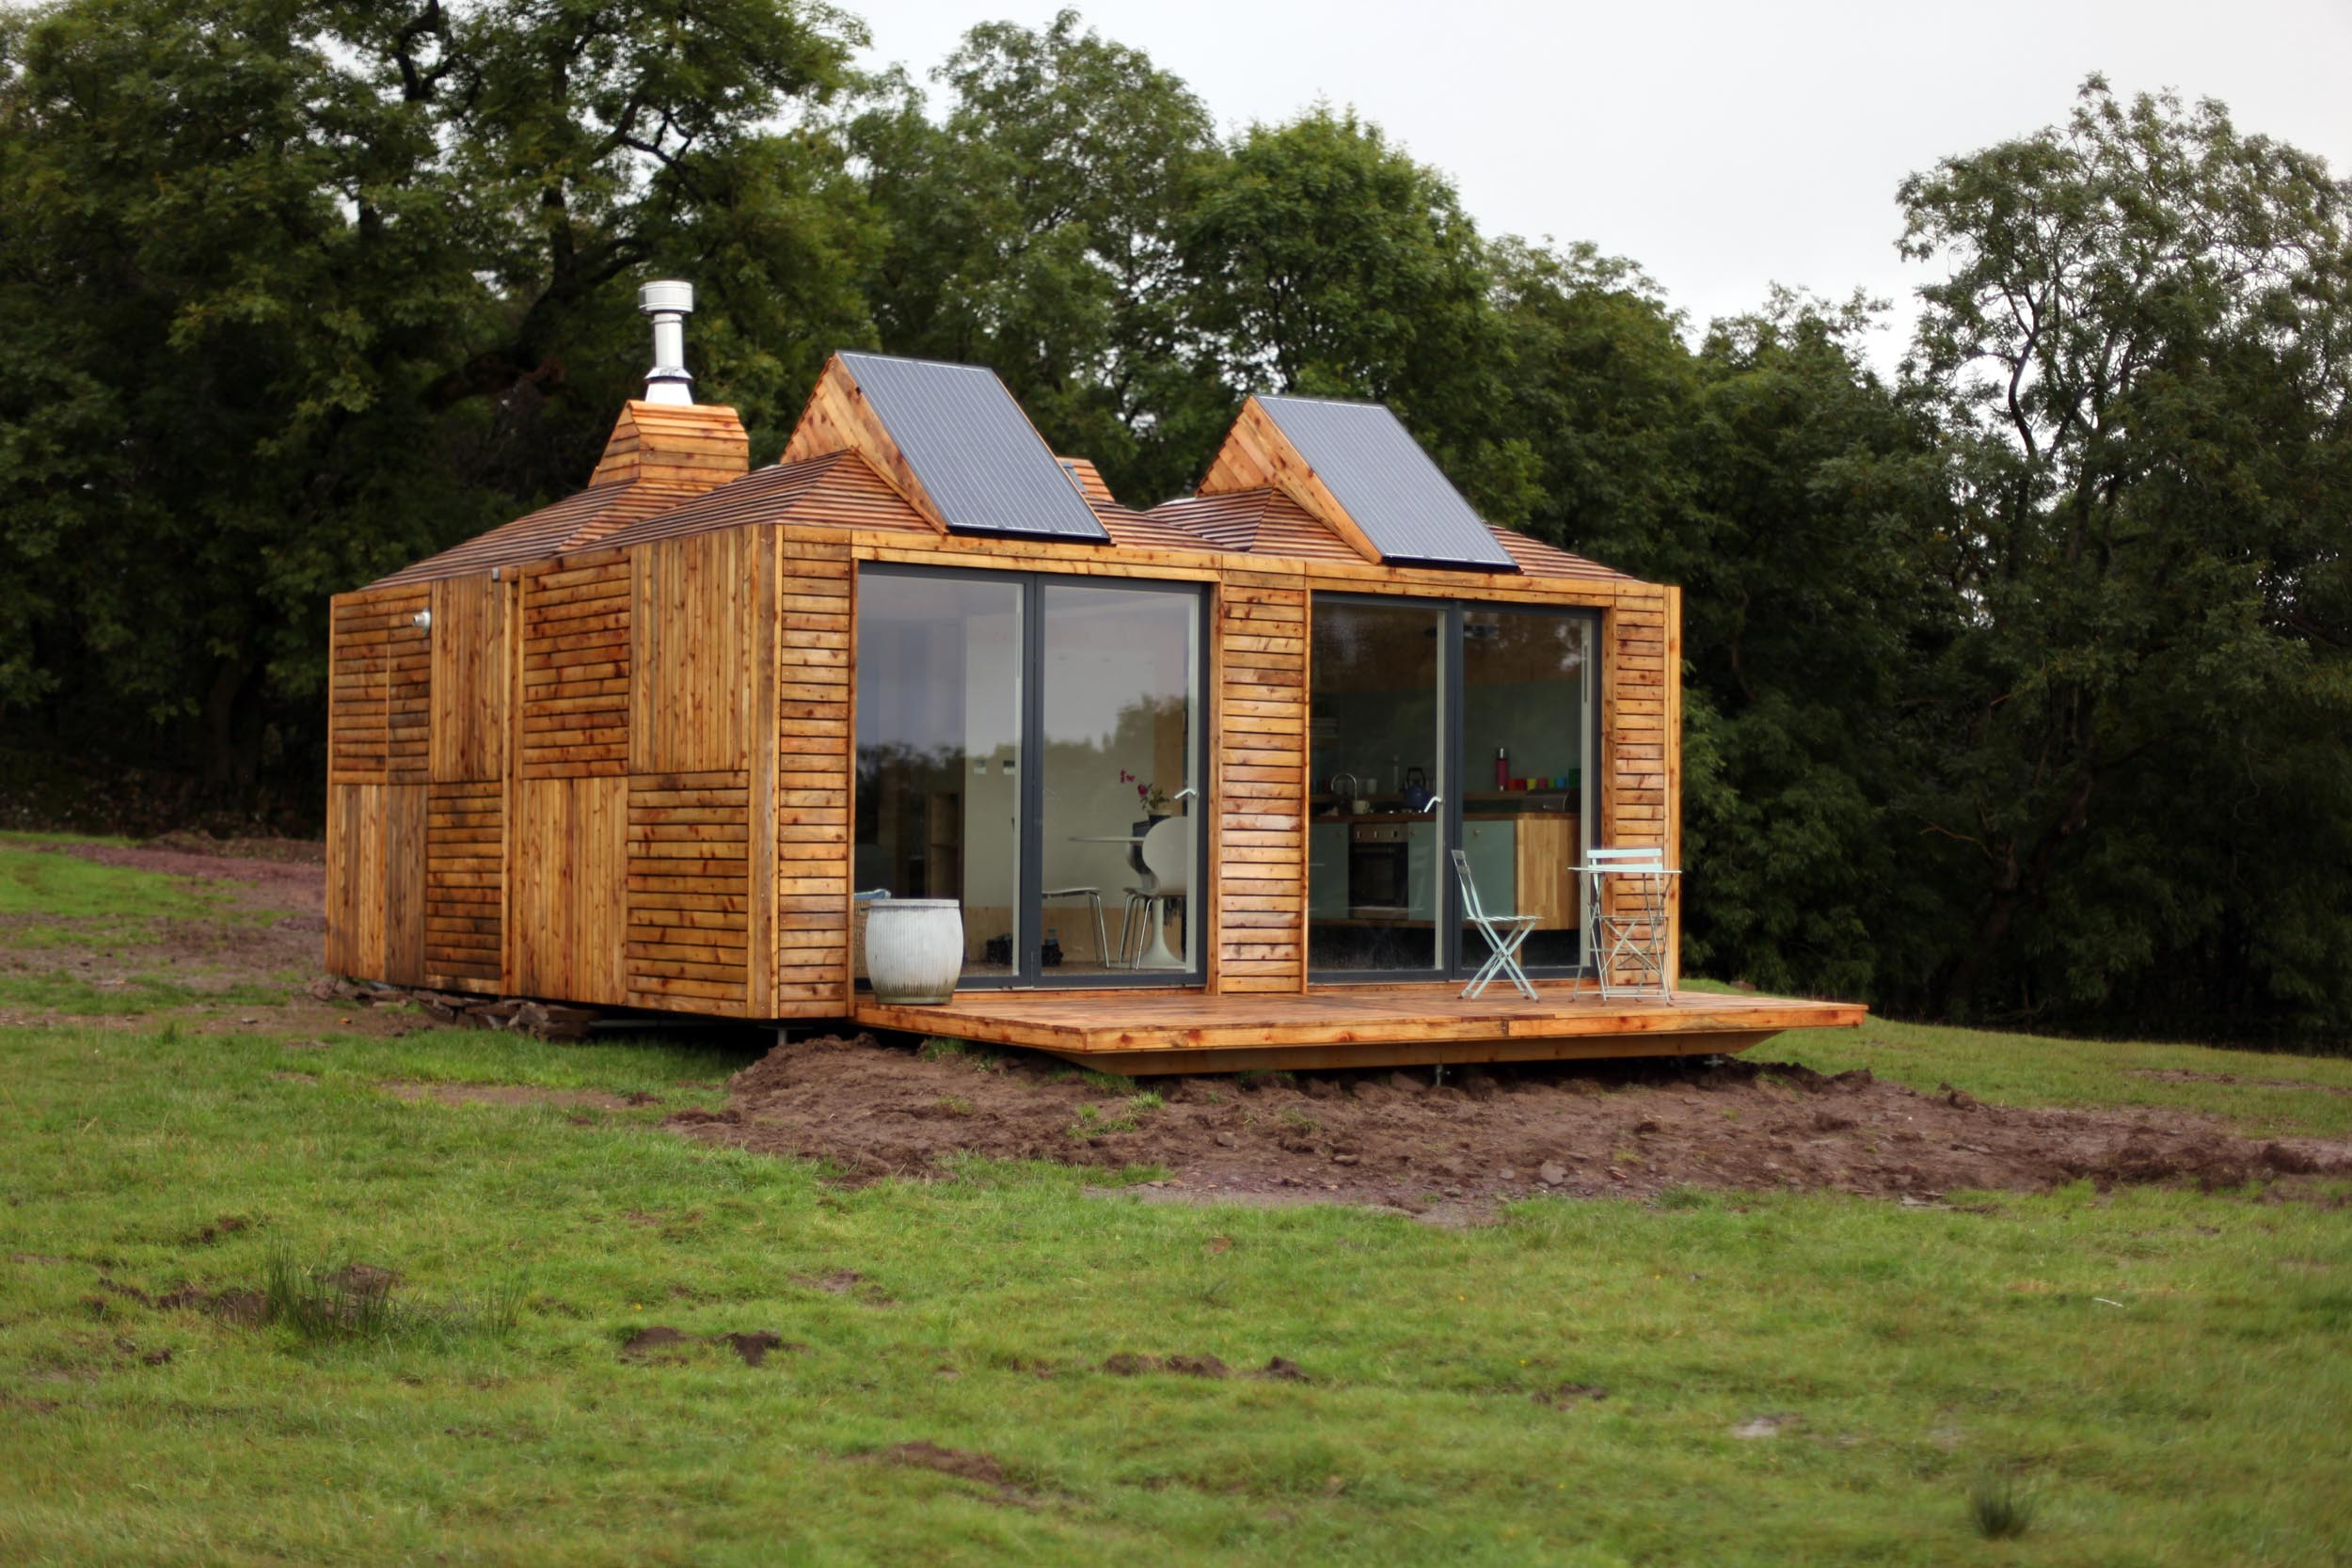 George Clarke Shows Off His Amazing Spaces  May Include Sheds